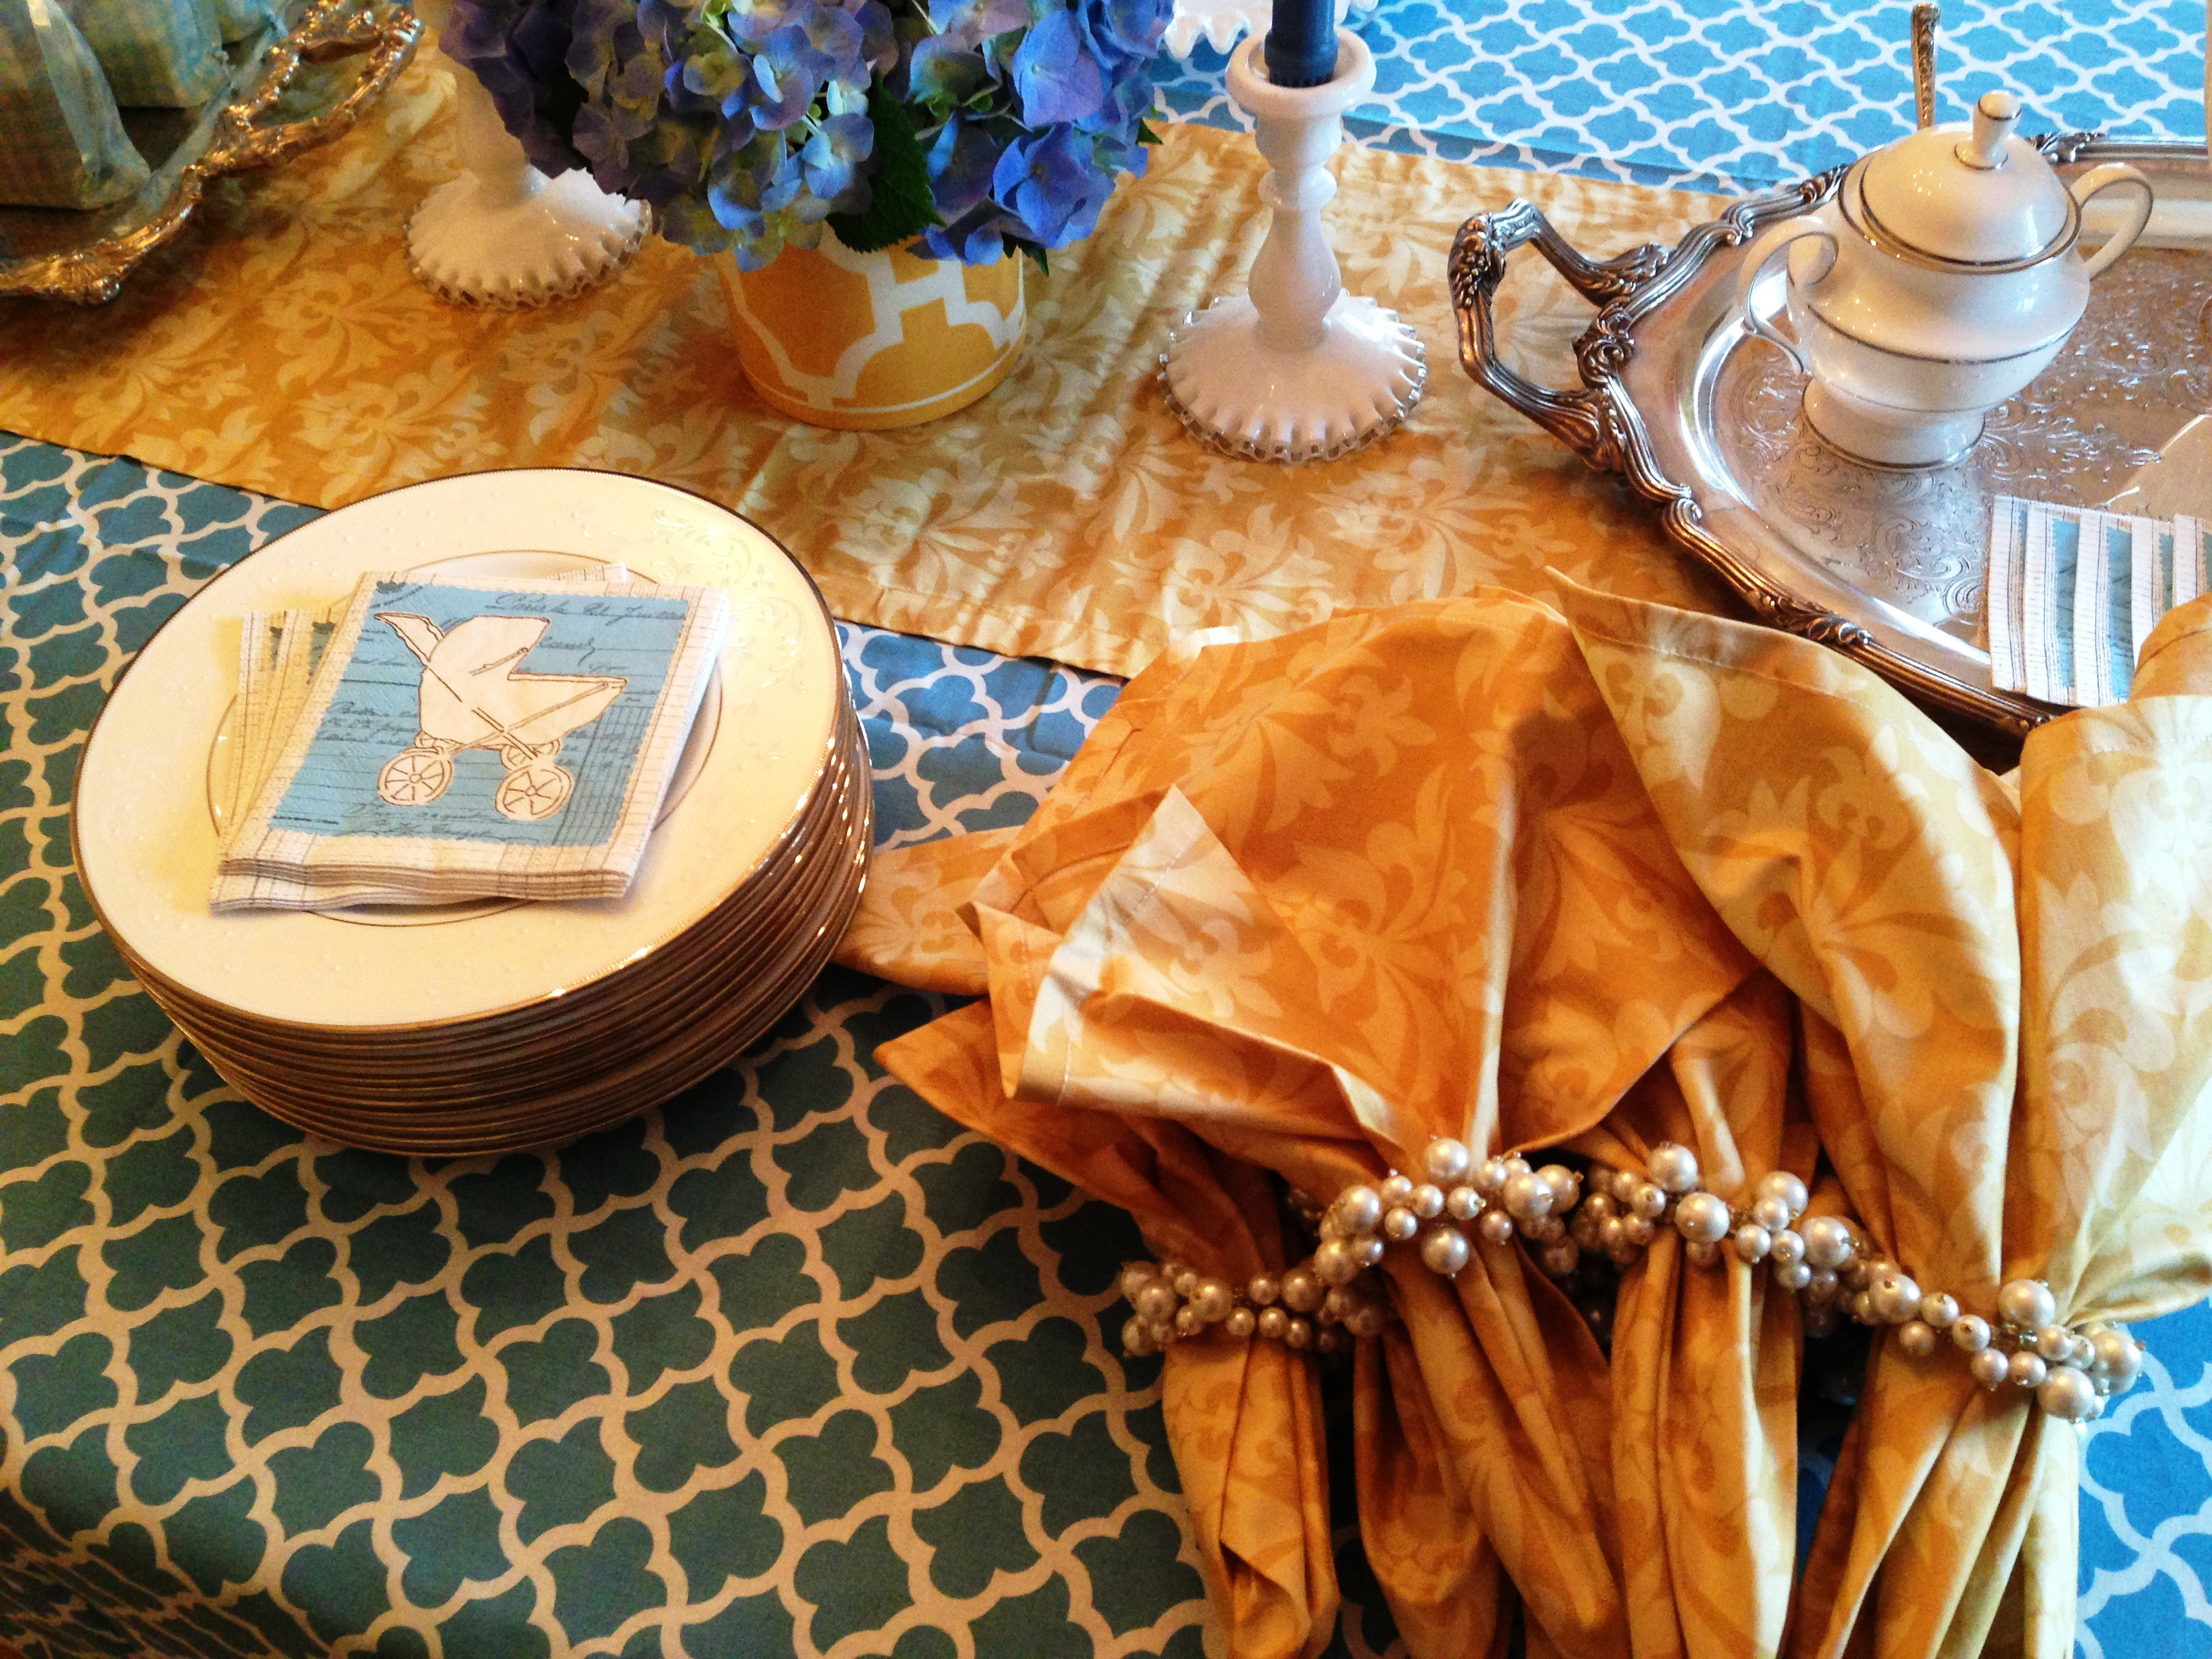 ... faux pearl napkin rings are from Once Upon a Table in Chester, NJ